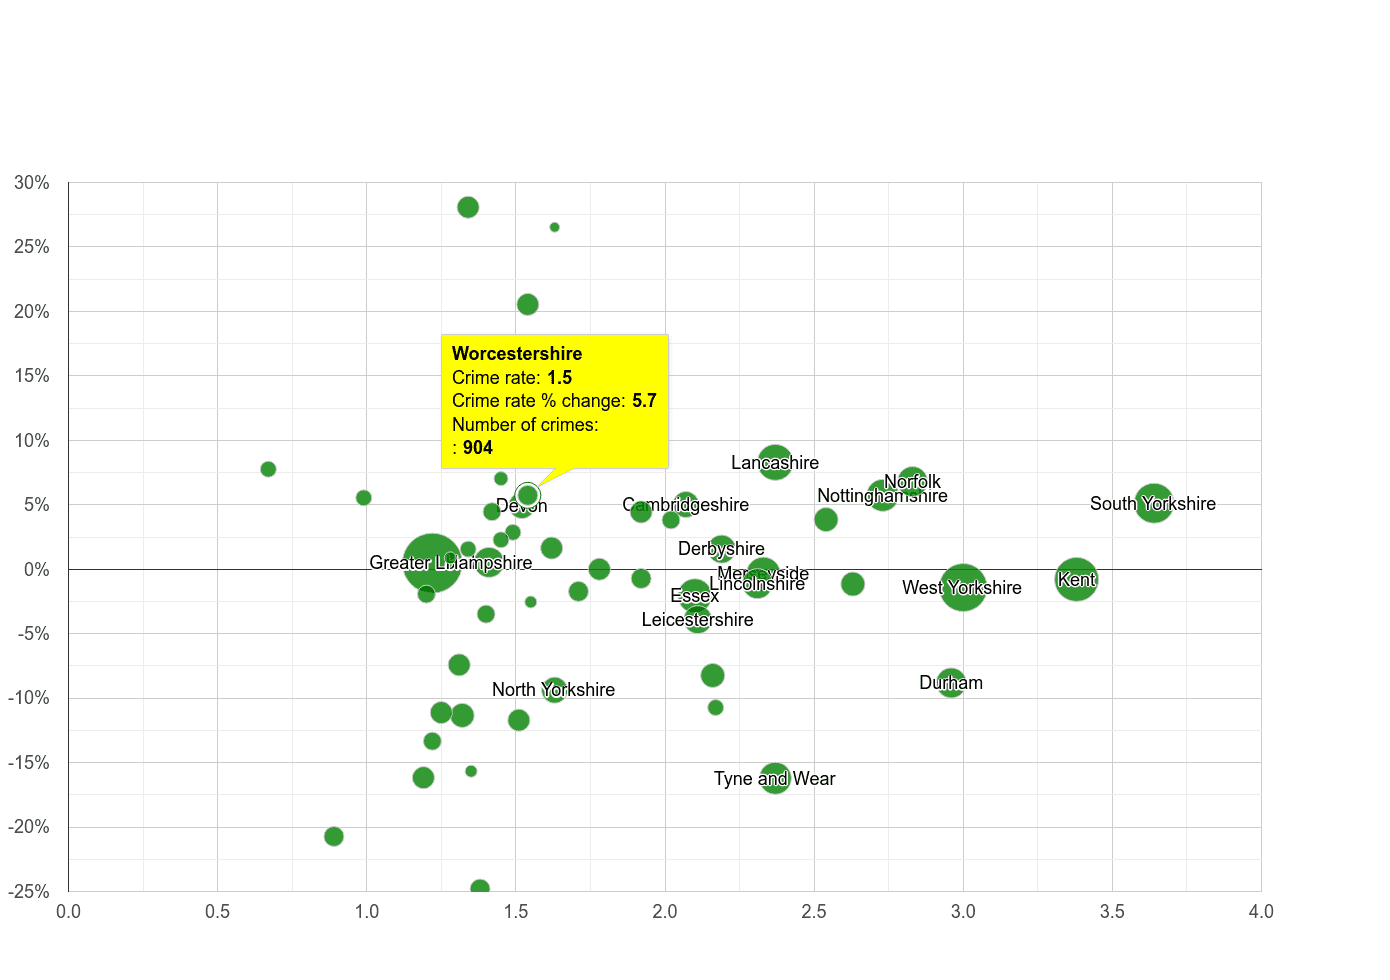 Worcestershire other crime rate compared to other counties